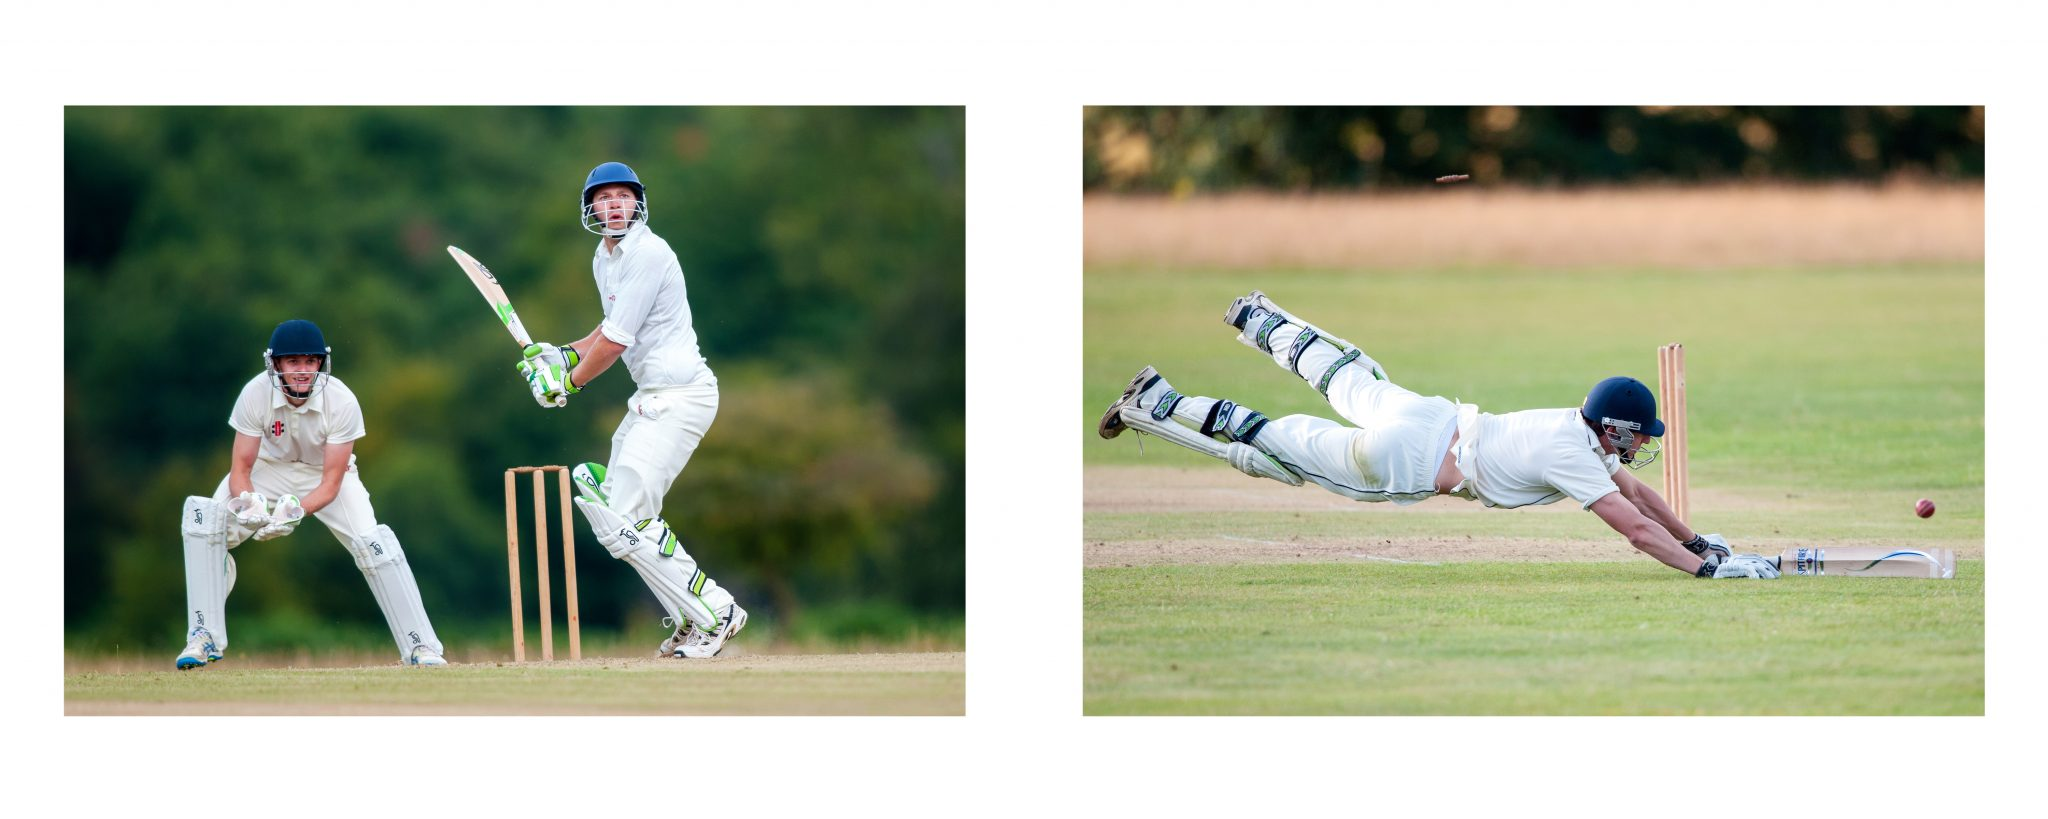 2016 cricket season in pictures - Sarah Williams Photography